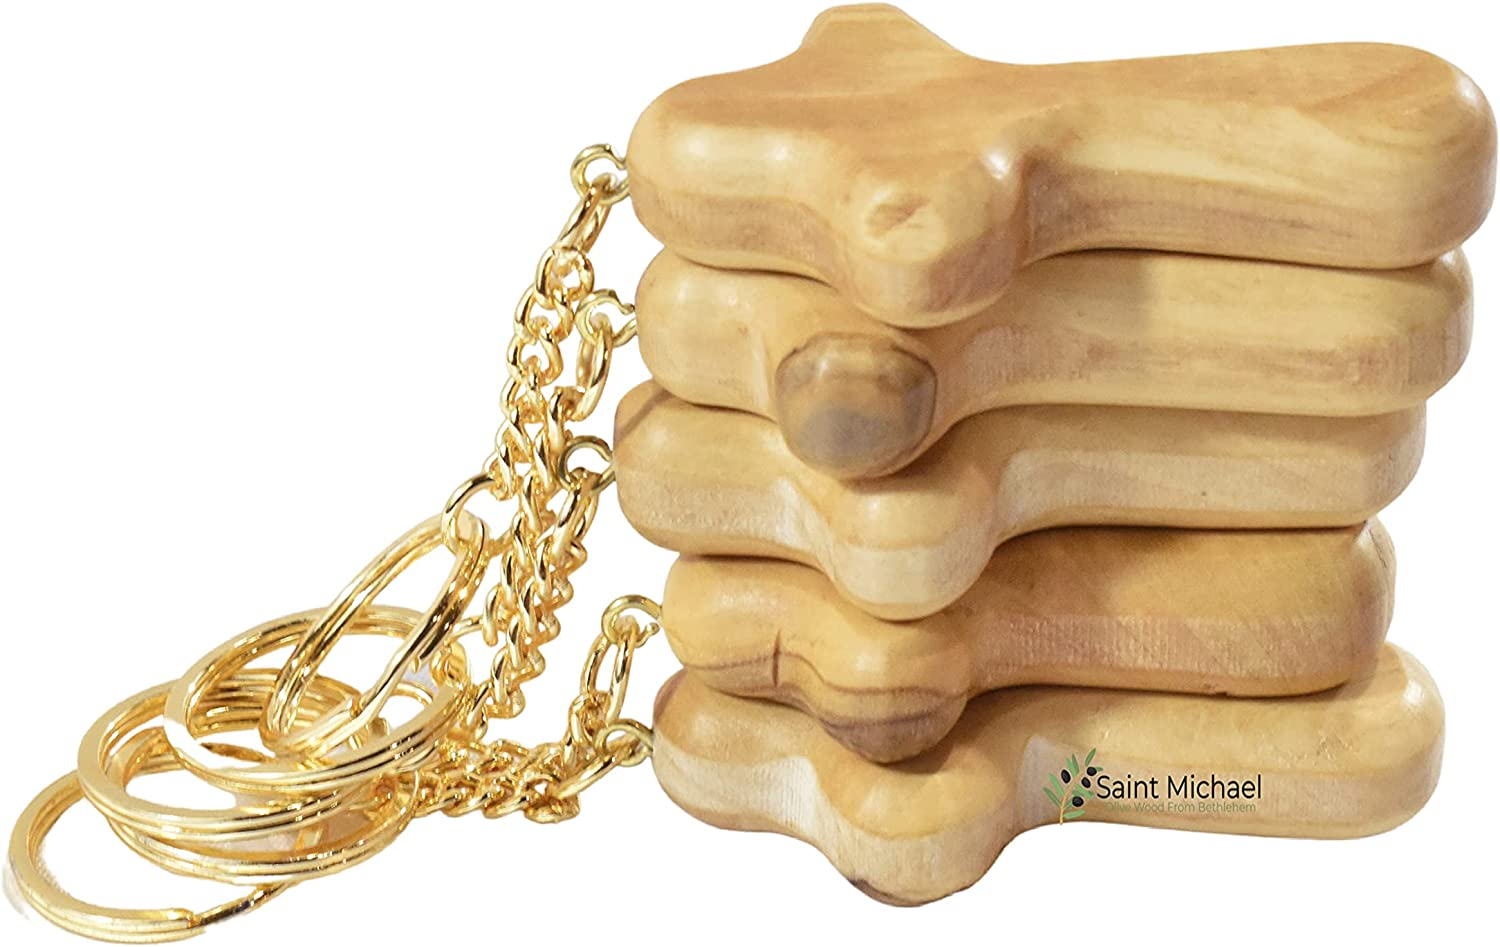 Olive Wood Comfort Cross Keyring Hand Made in Bethlehem Holy Land Beautiful Gift for Fathers Day or Somebody You Love